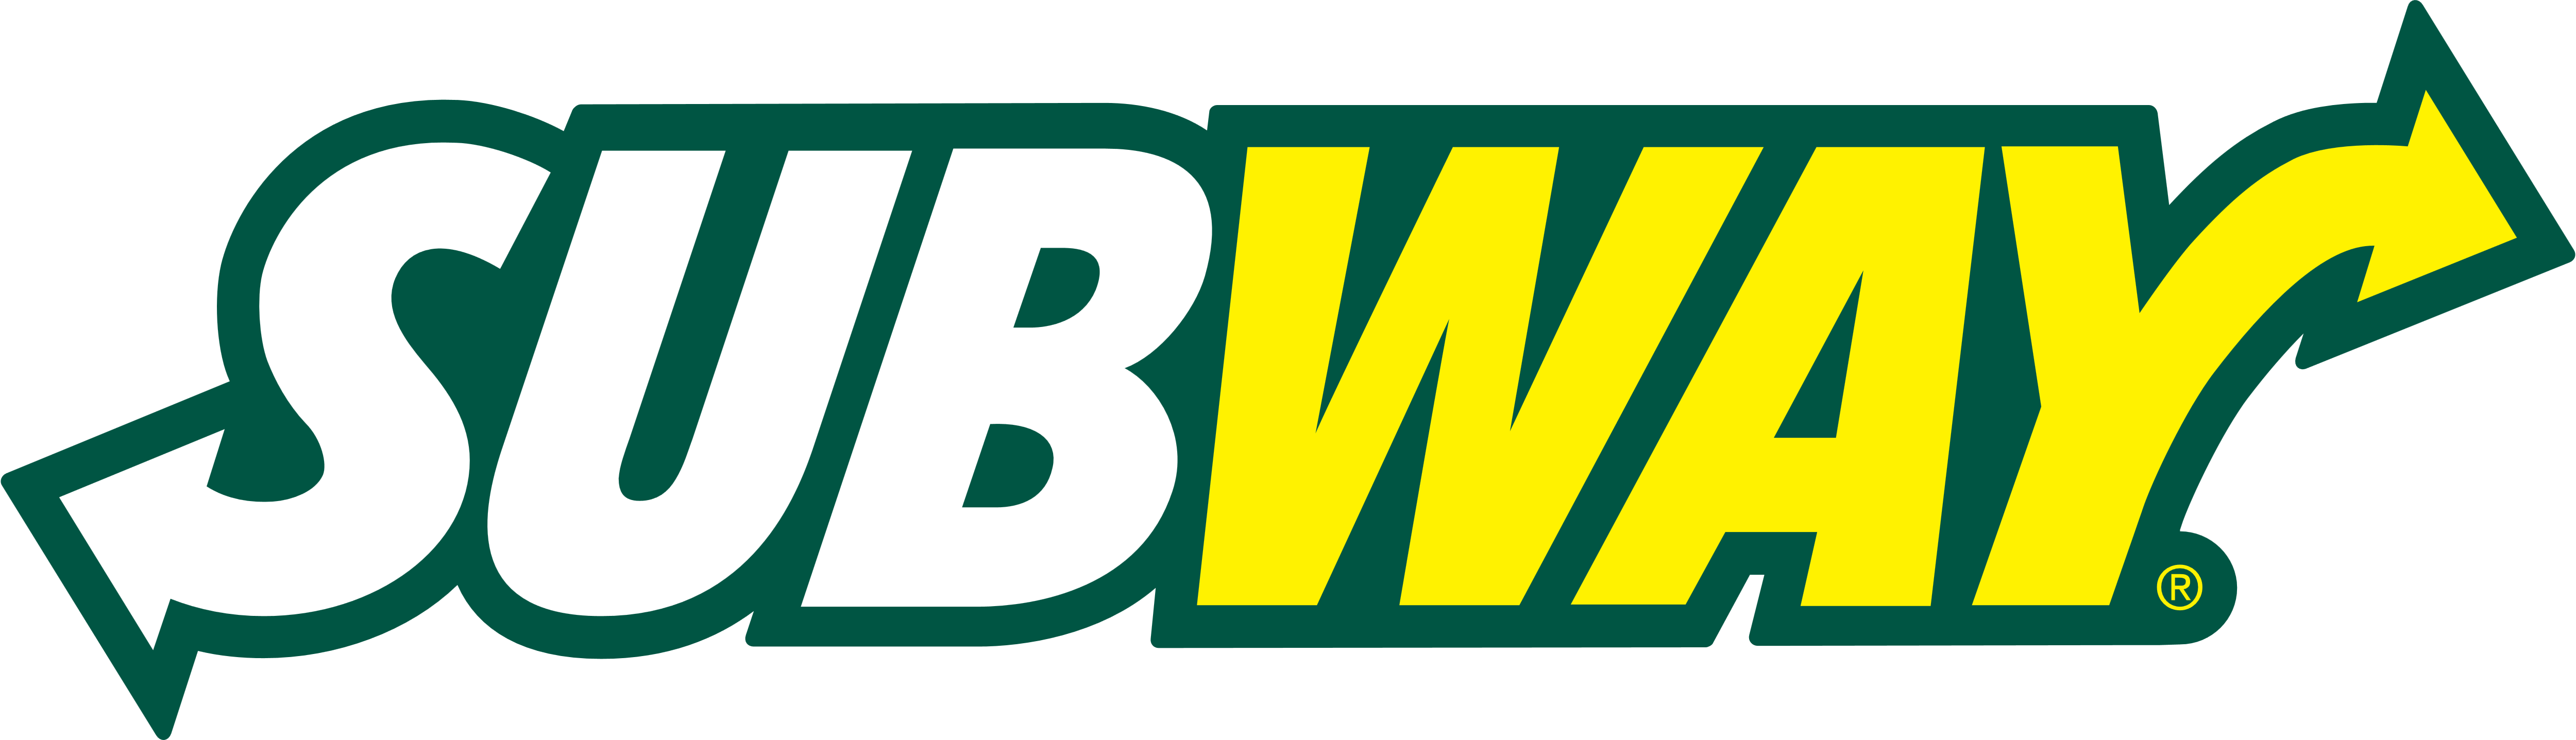 Subway – Logos Download